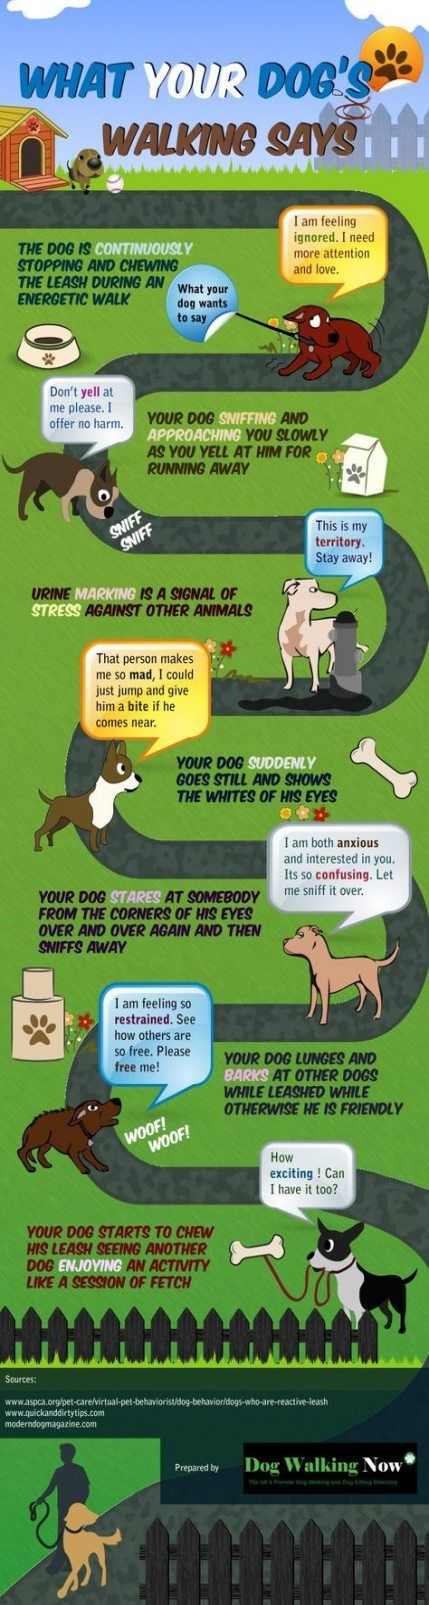 Dogs walking watches 30+ ideas Dog facts, Dog care, Dog